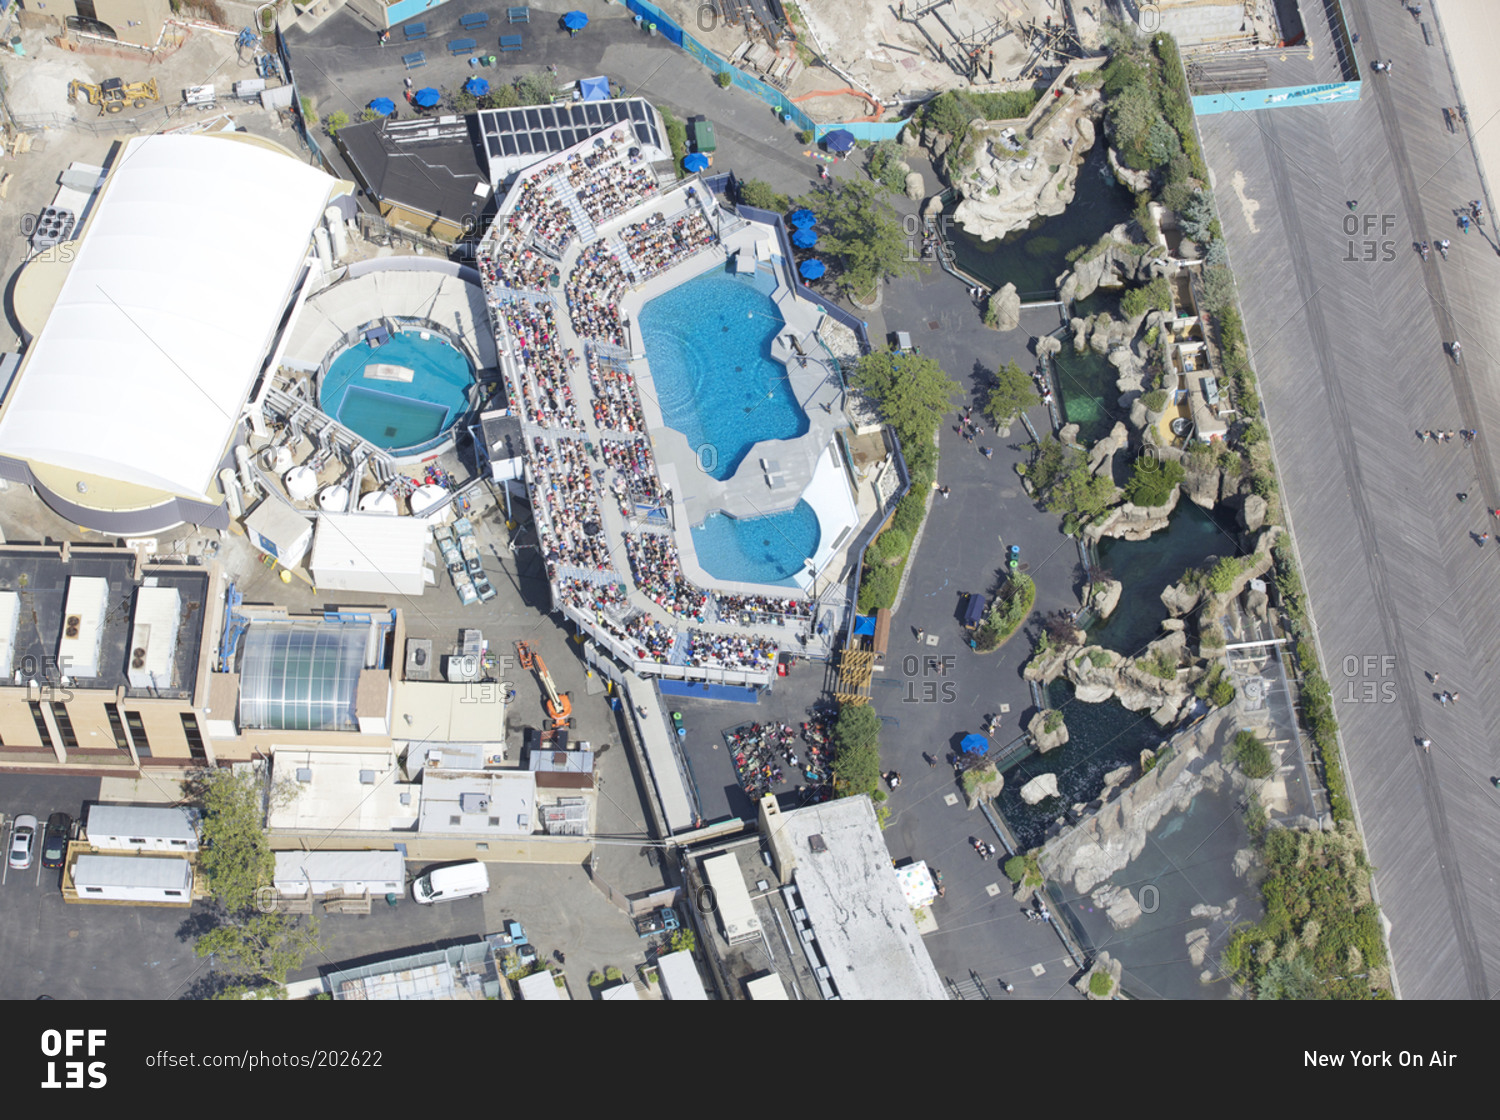 New York Hall of Science New York City, March 19, 2015: Aerial view of the New York Aquarium in Coney ...